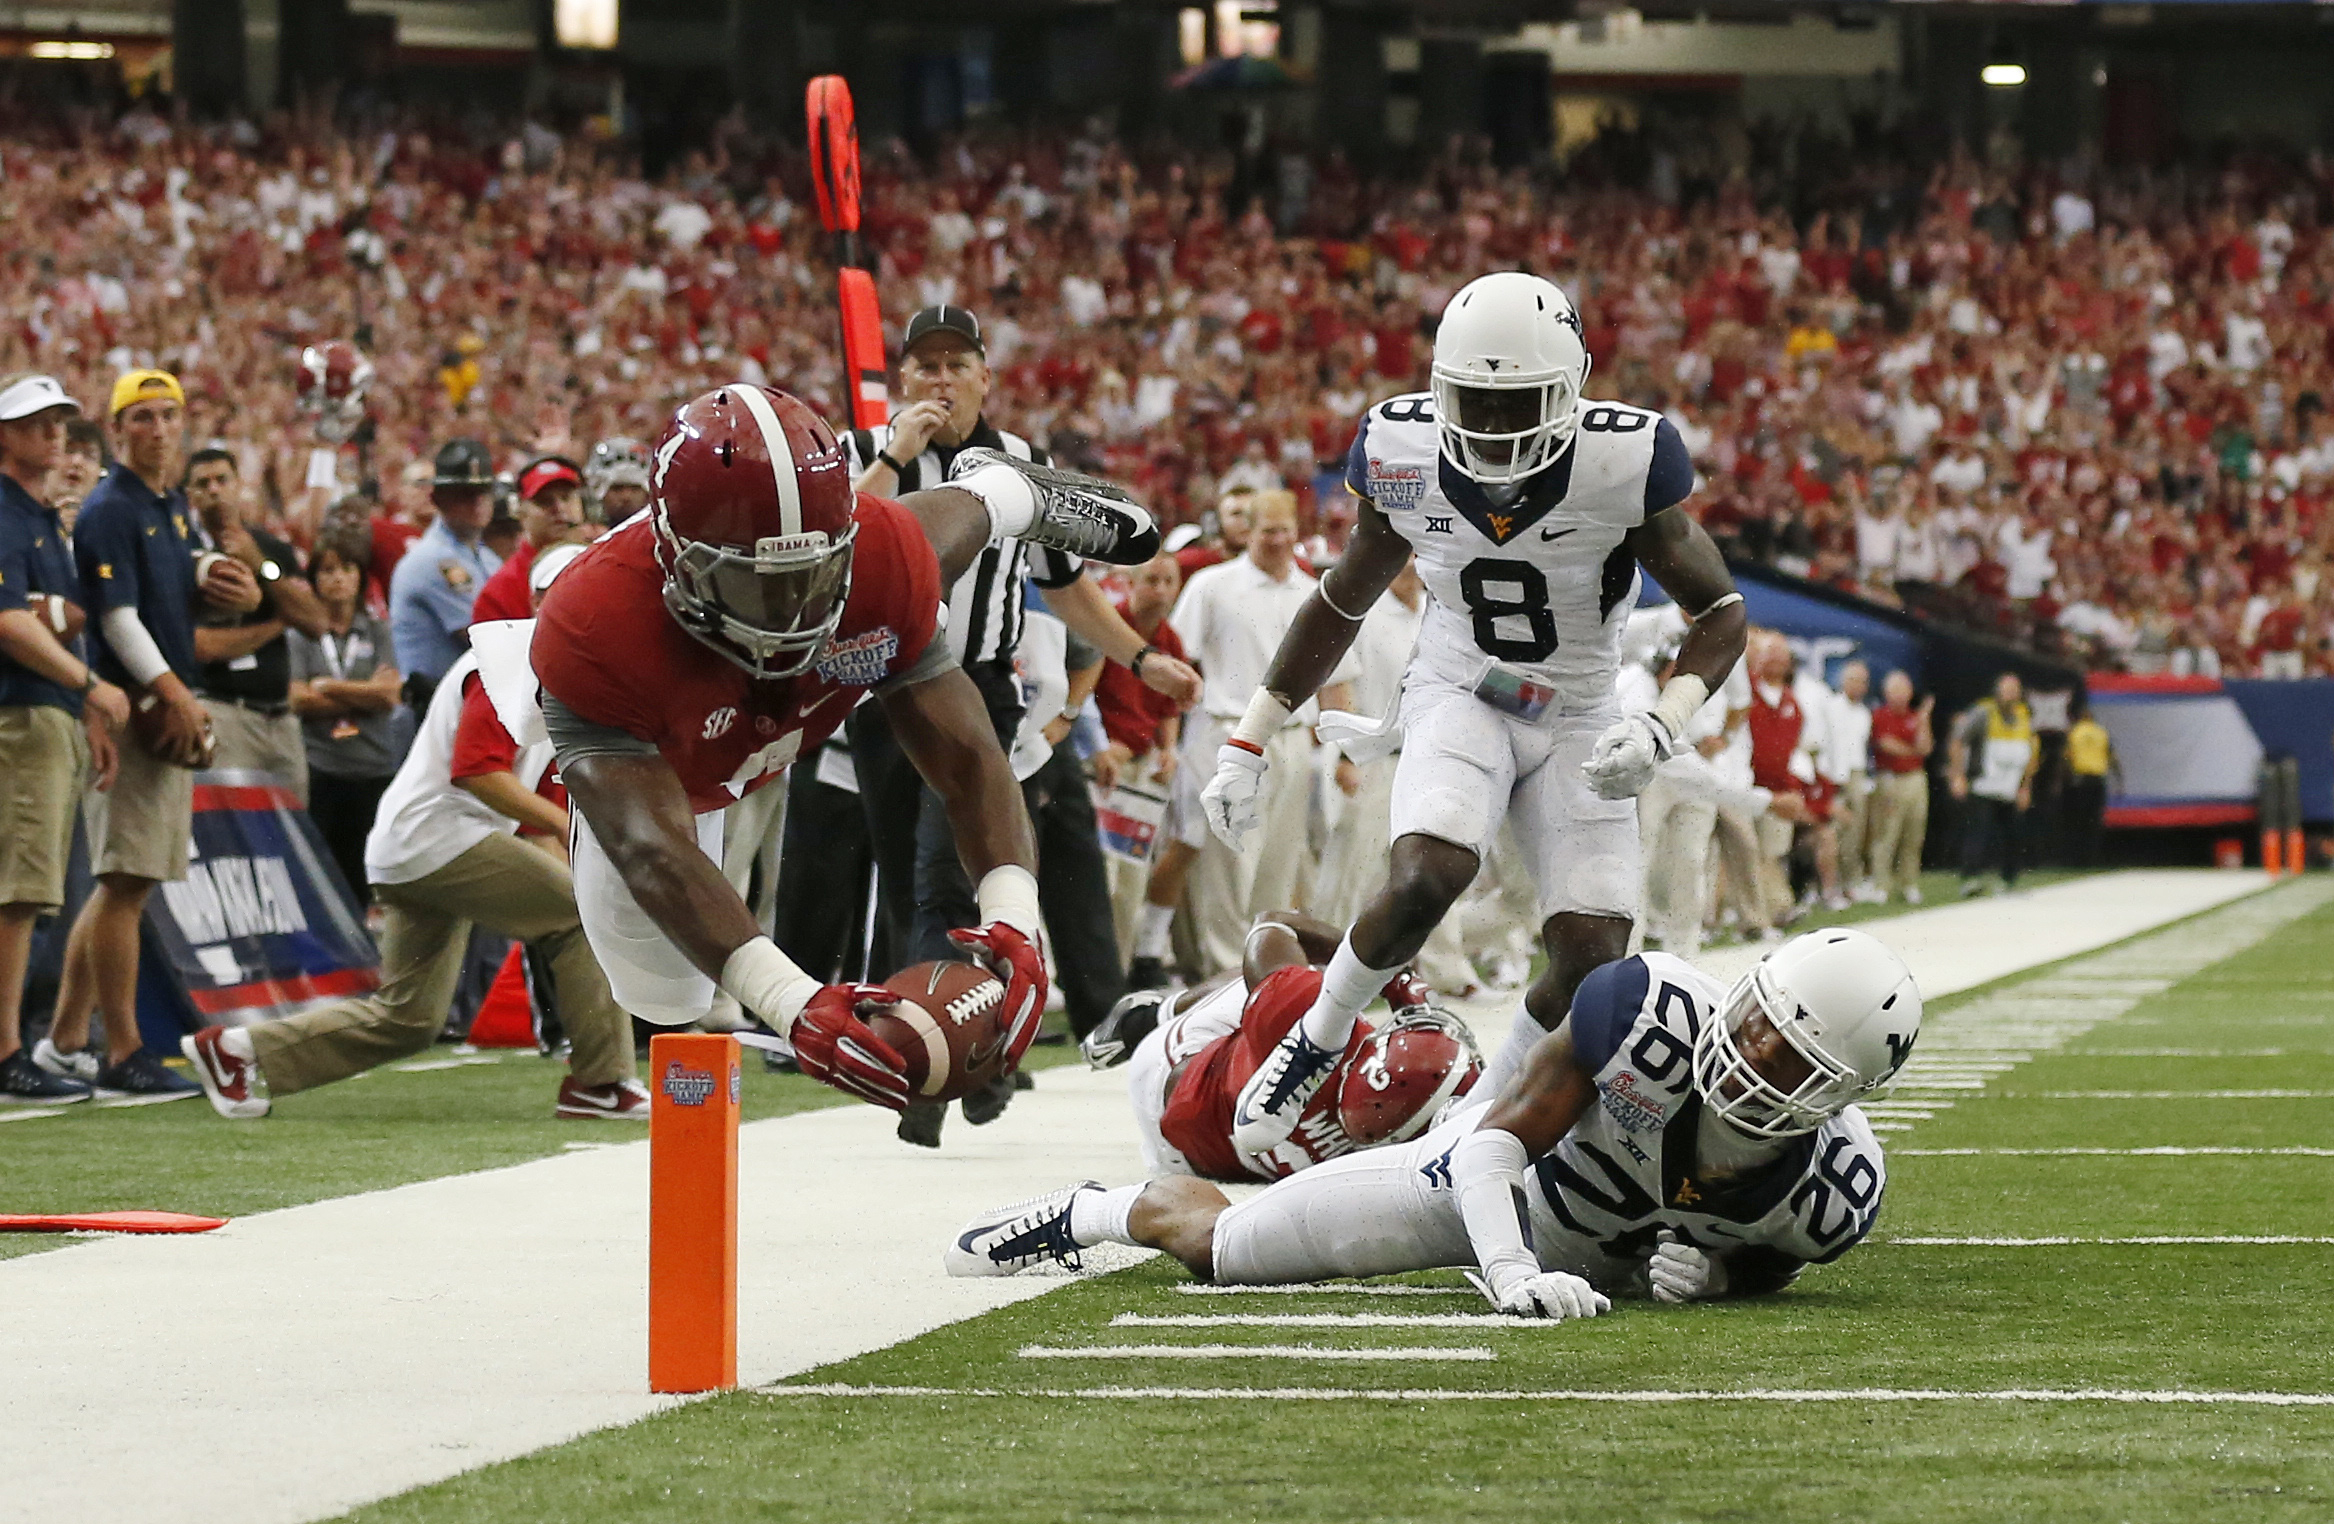 Alabama running back T.J. Yeldon (4) dives into the end zone for a touchdown as West Virginia's Travis Bell (26) and Karl Joseph (8) defend in the first half of an NCAA college football game Saturday, Aug. 30, 2014, in Atlanta.  (AP Photo/Brynn Anderson)